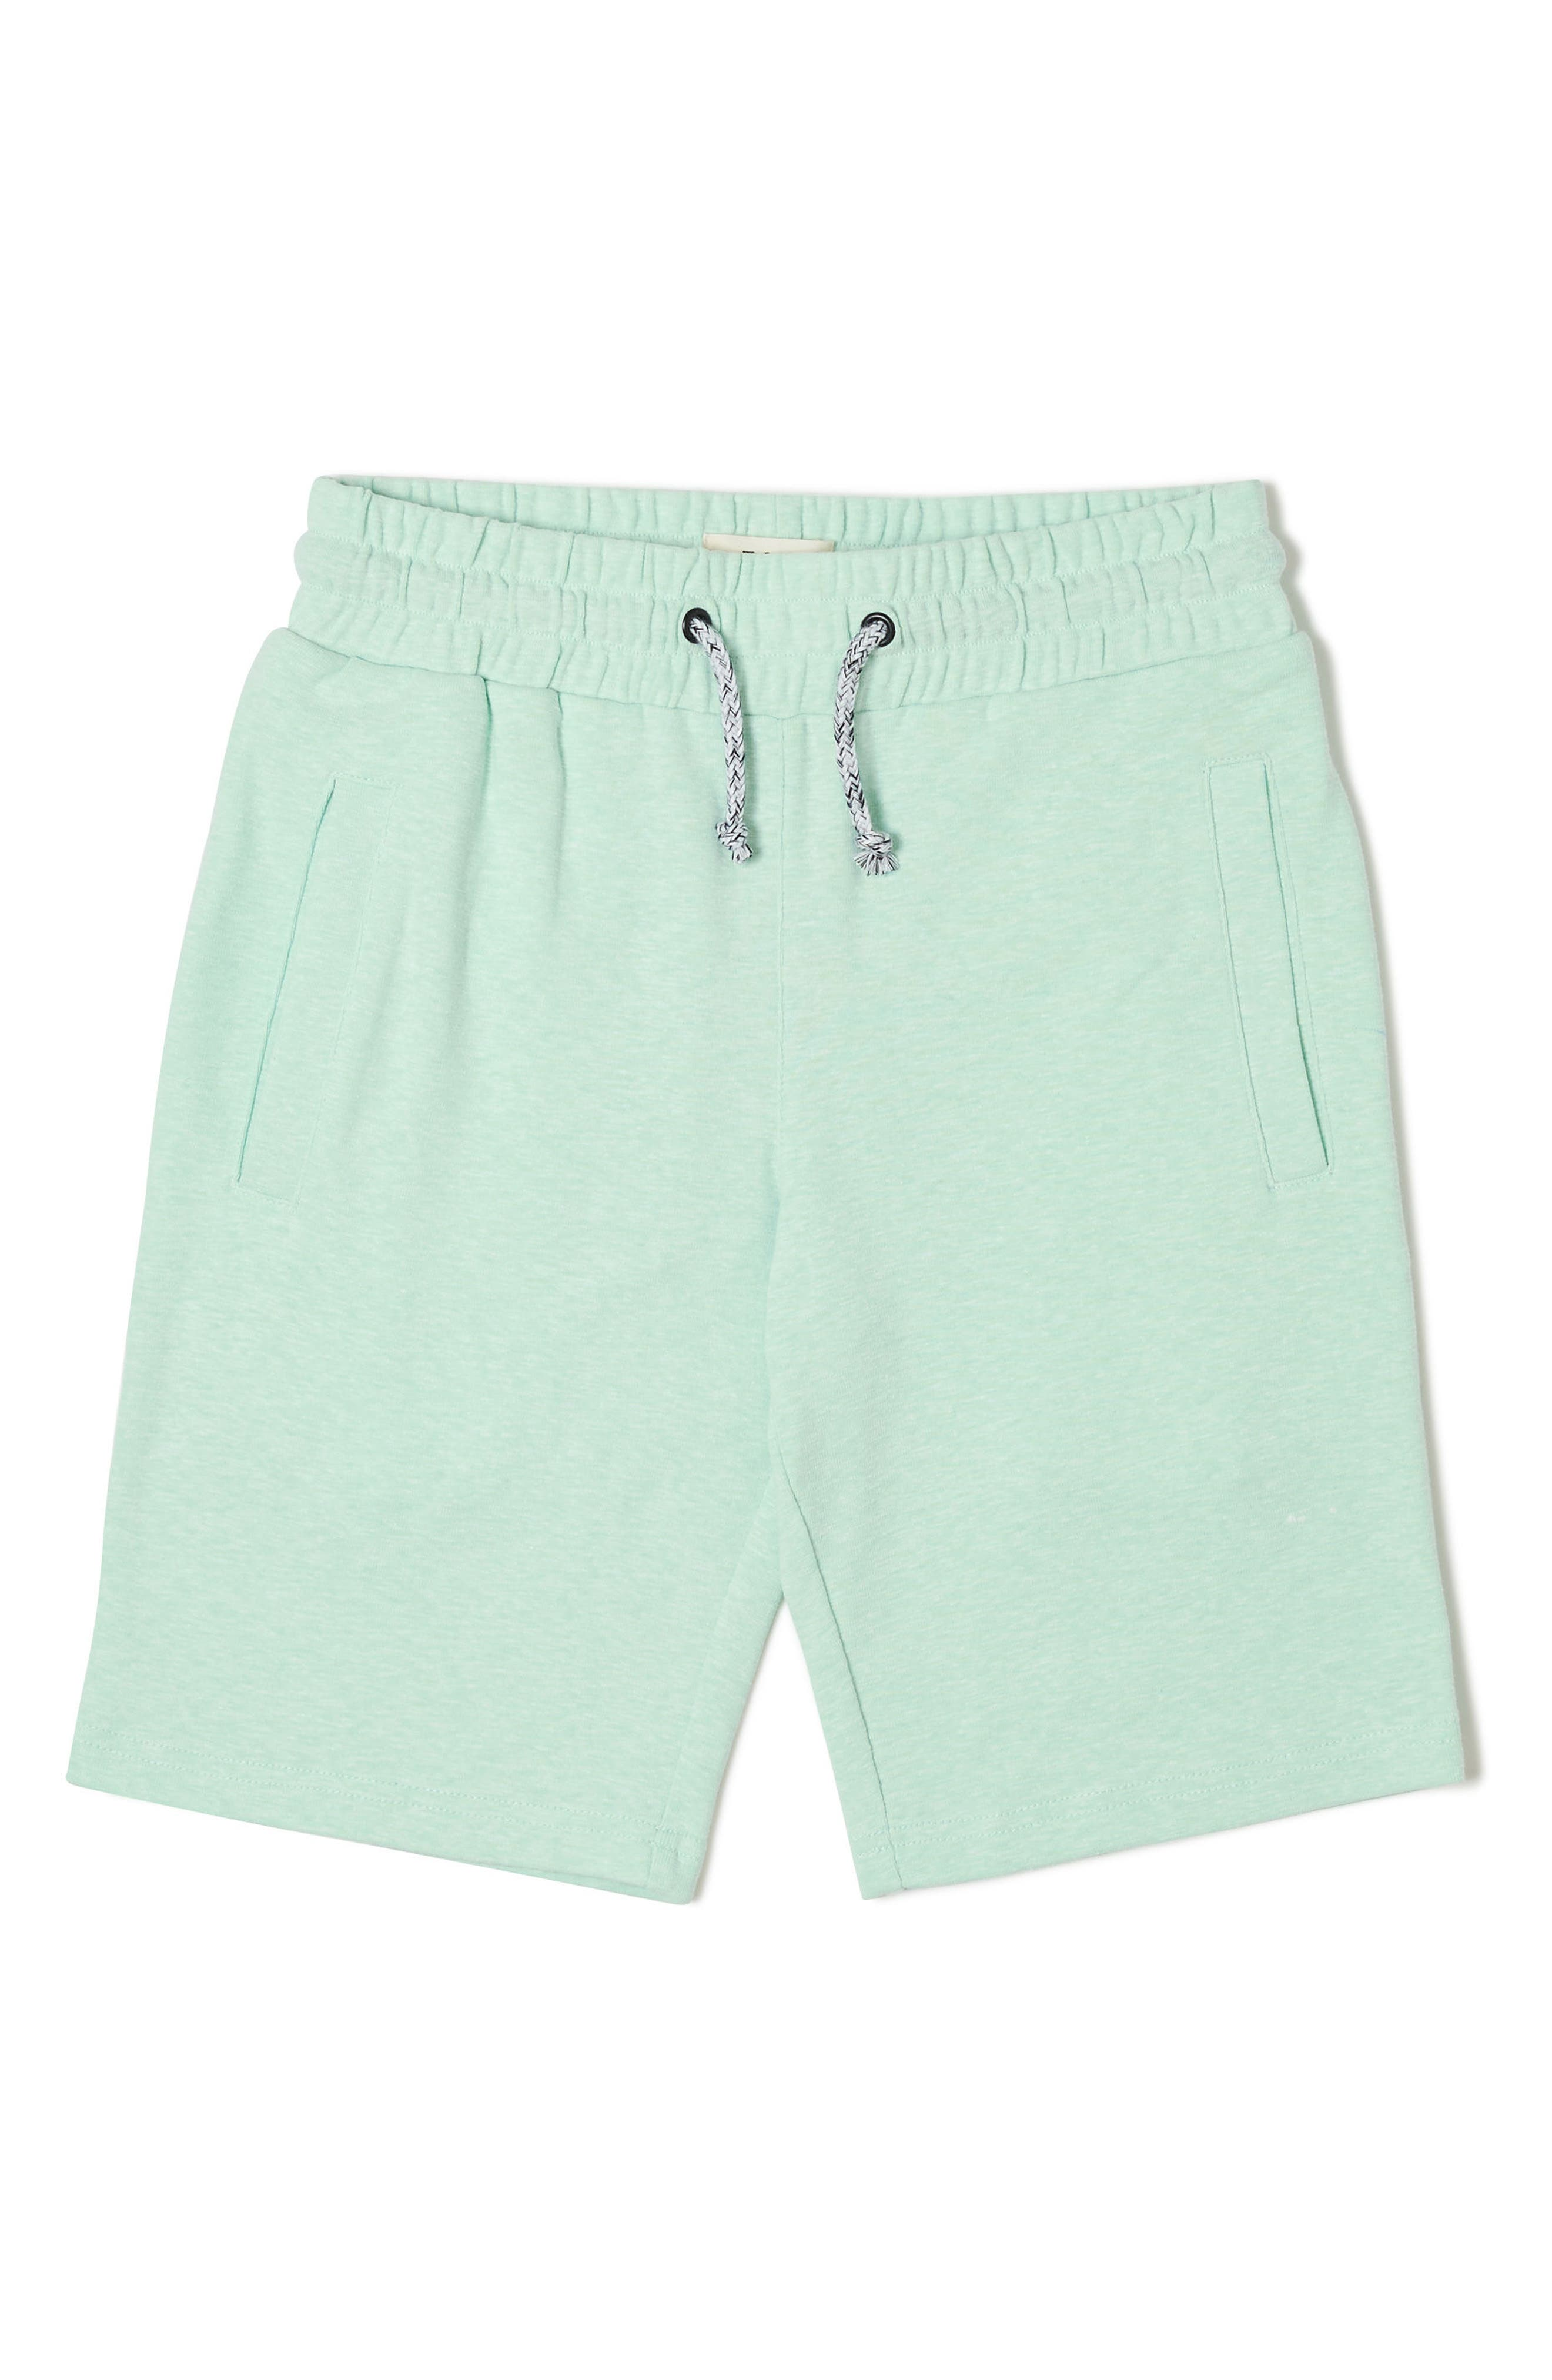 Ranger Knit Shorts,                             Main thumbnail 1, color,                             Green